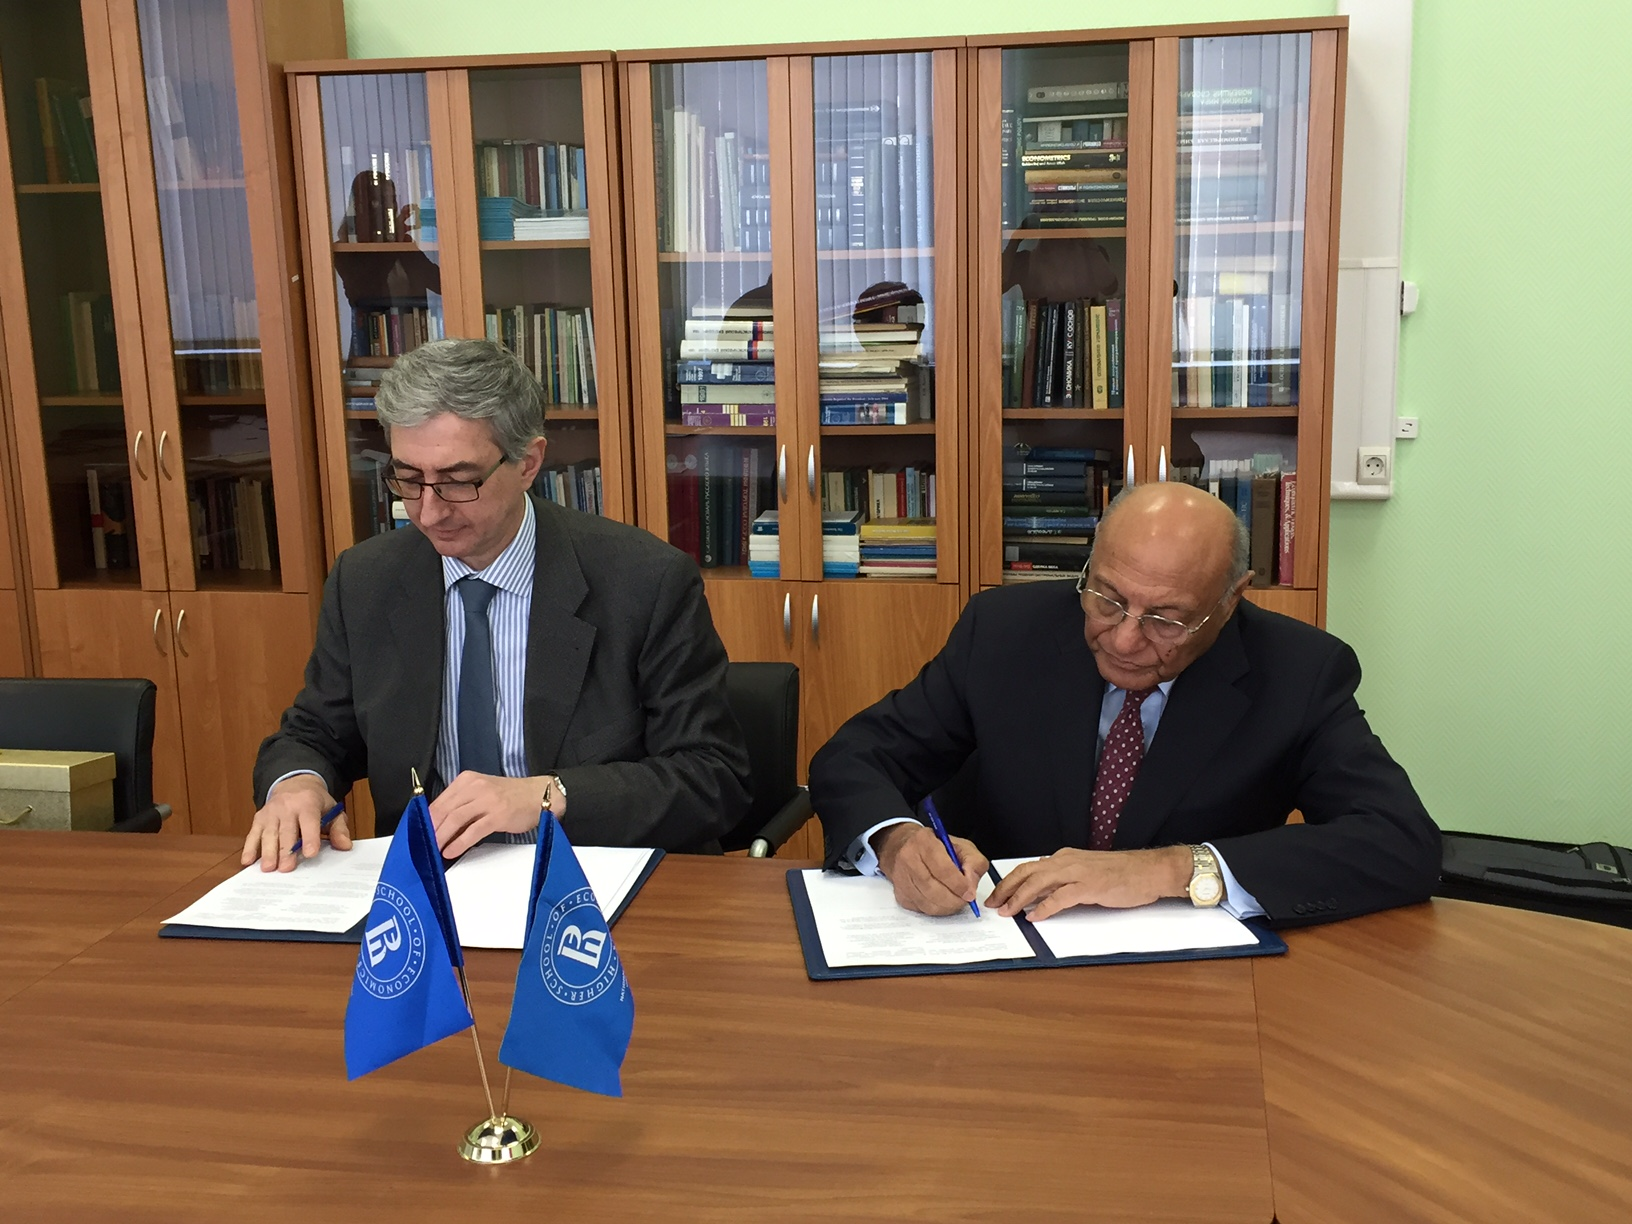 University of Central Asia and Higher School of Economics Sign Partnership Agreement in Moscow